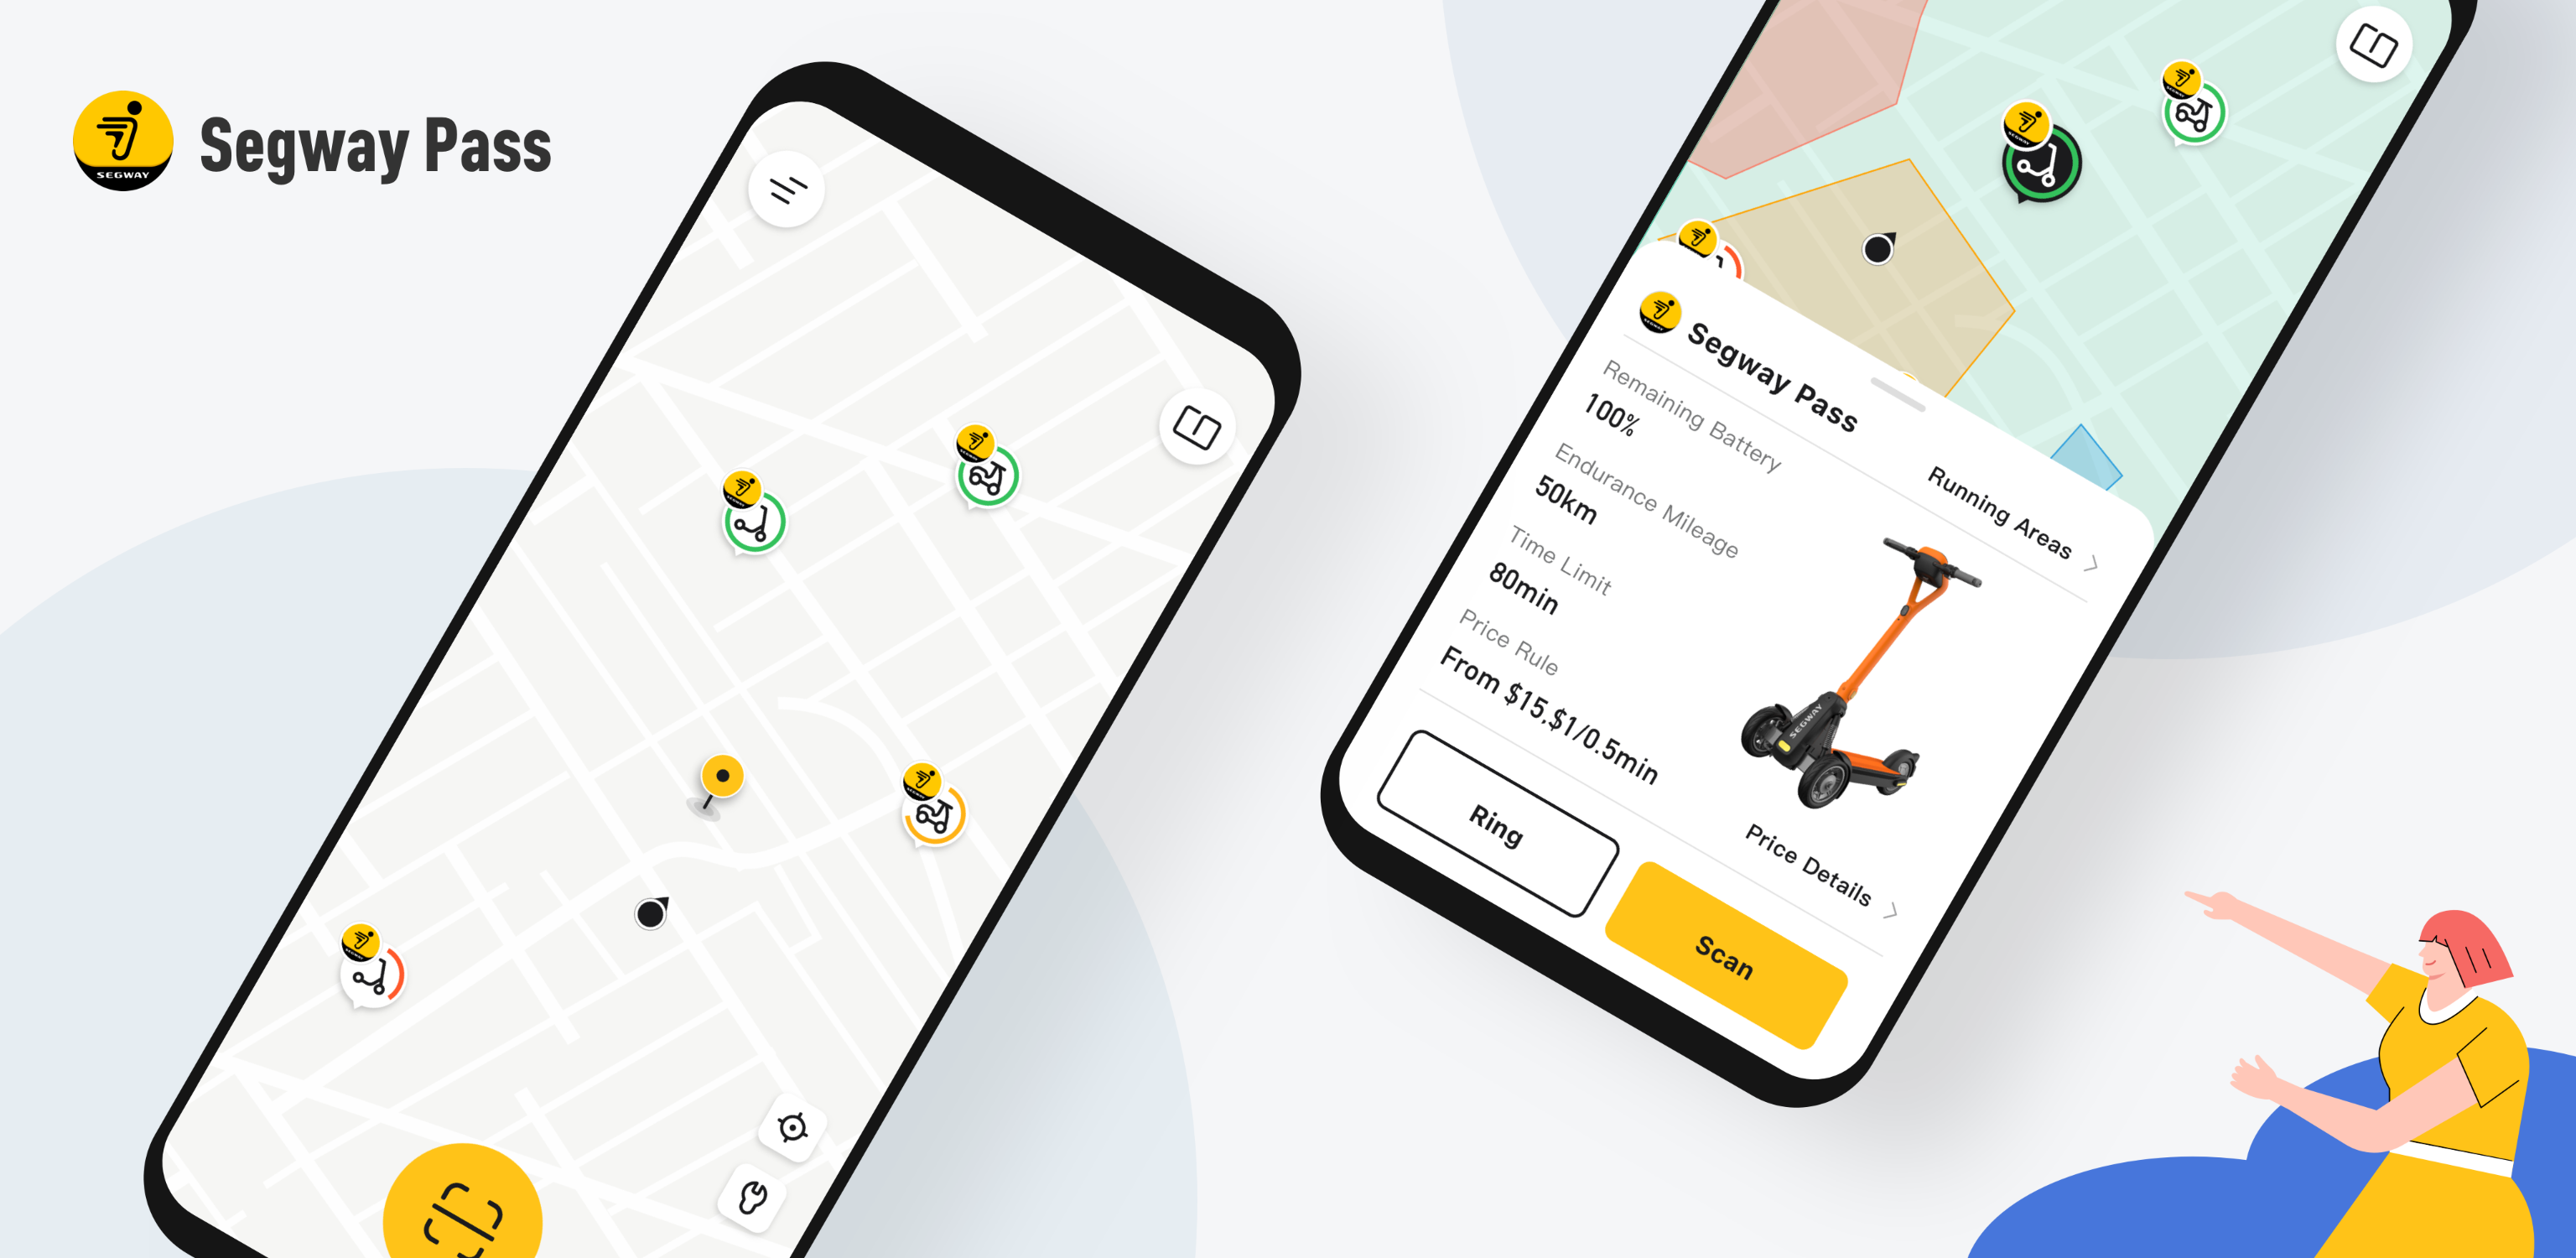 Introducing the new Segway Pass app for startups and entrepreneurs